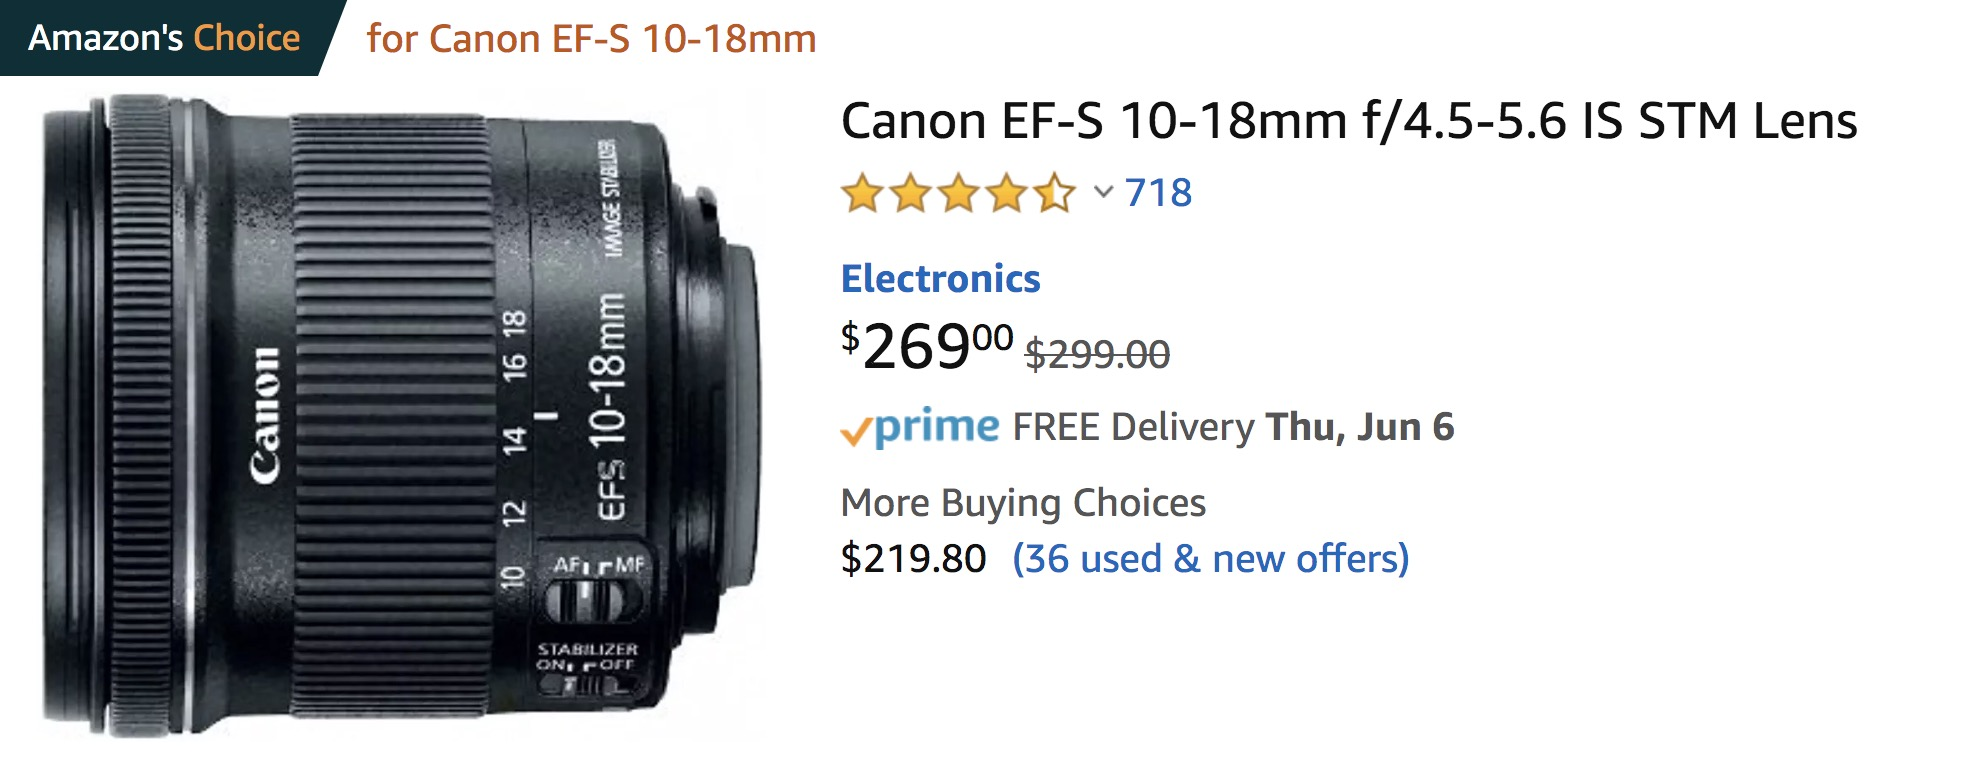 Canon EFS Lens MM - small business video setup